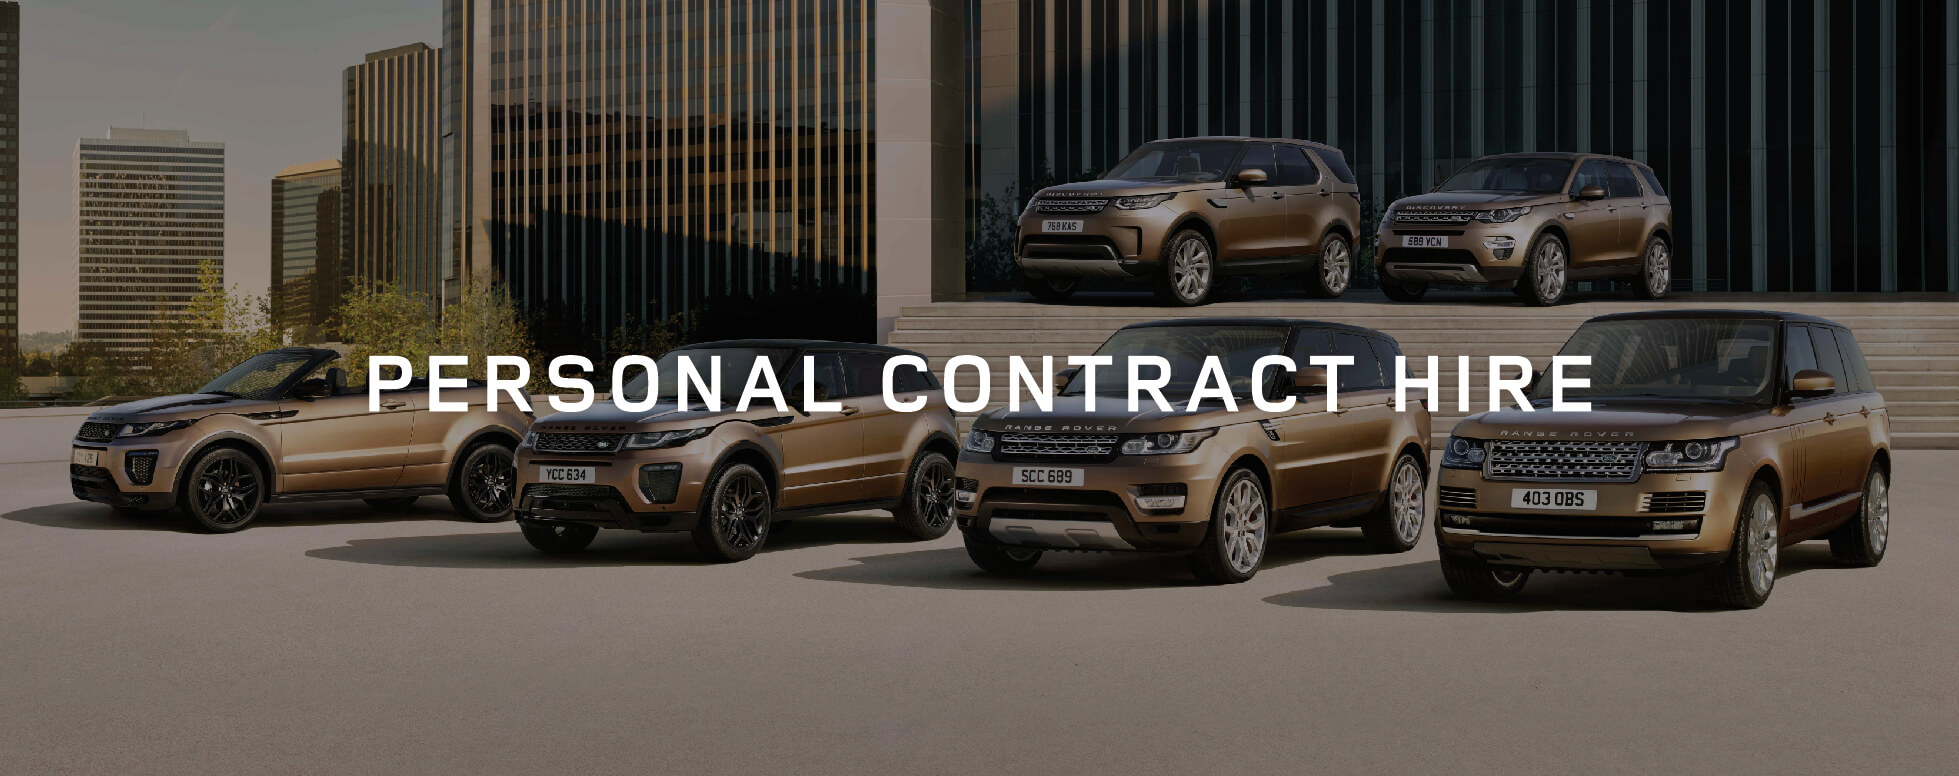 Land Rover Personal Contract Hire Offer BB